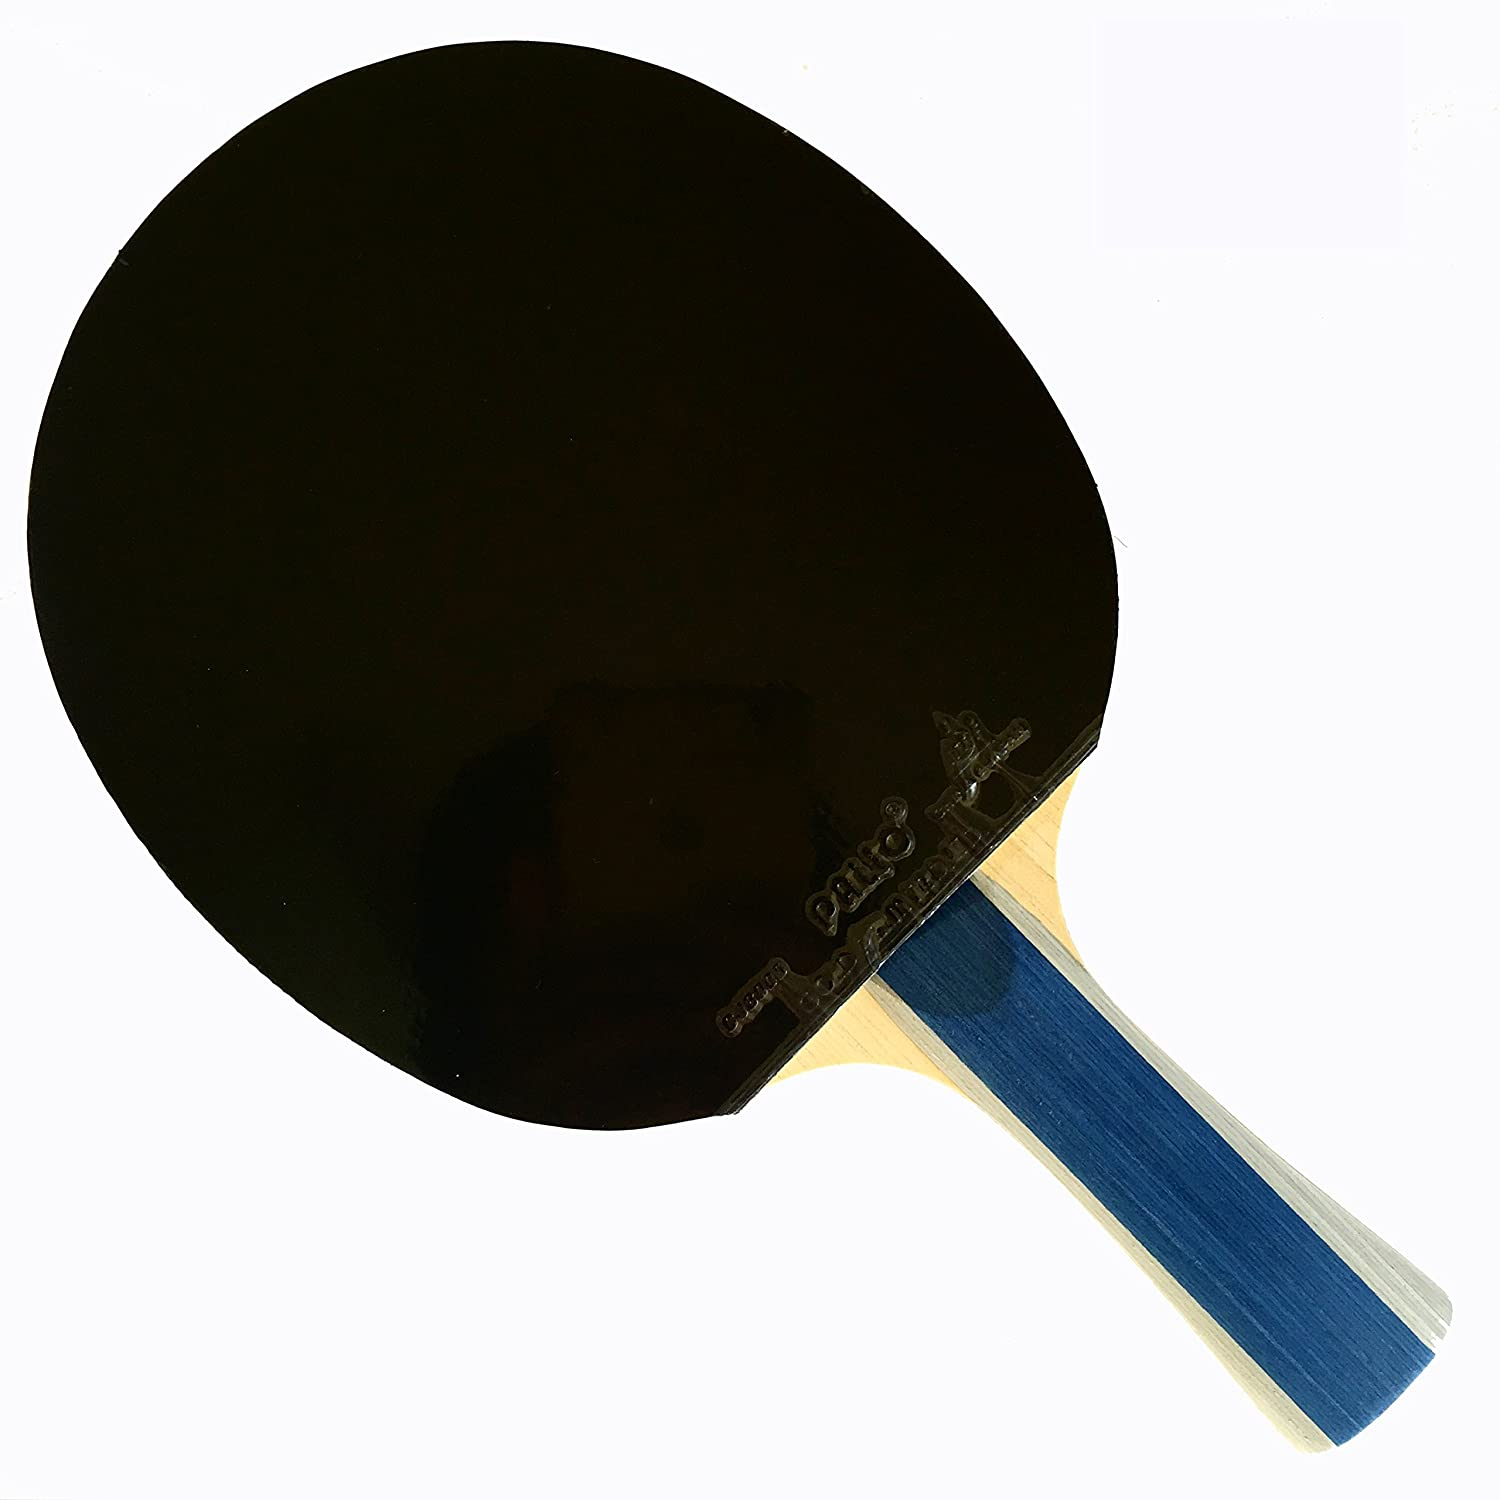 Palio Master 2 Table Tennis Racket